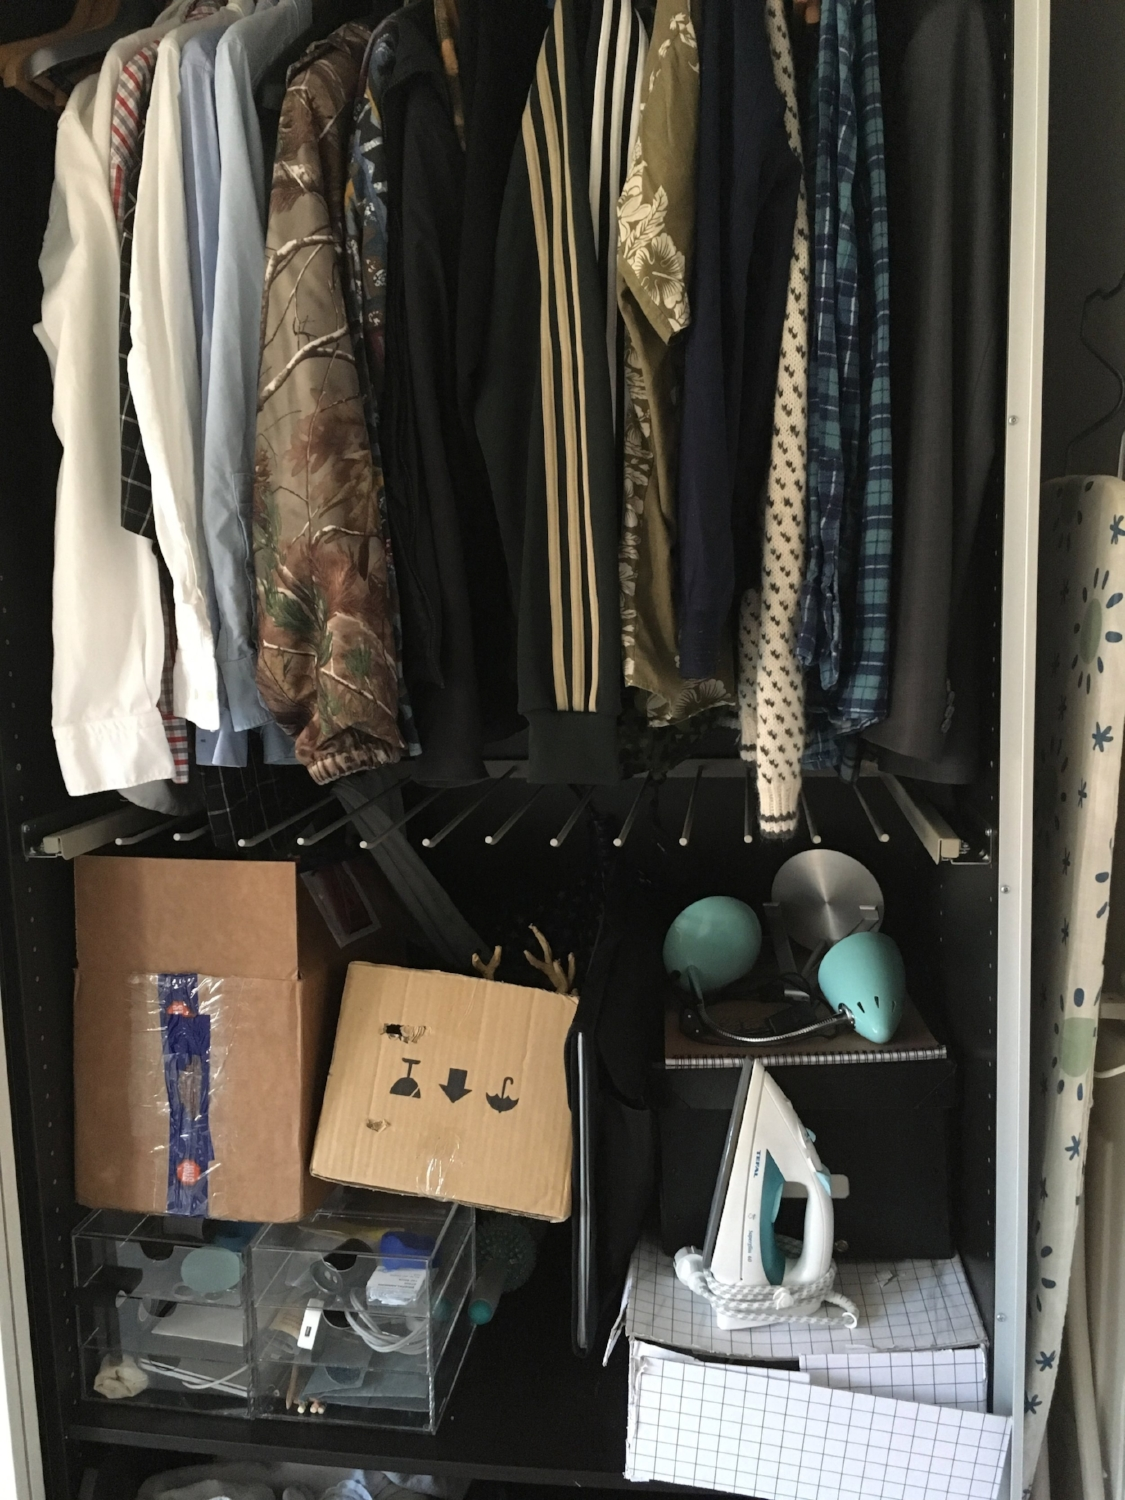 Sons closet - before